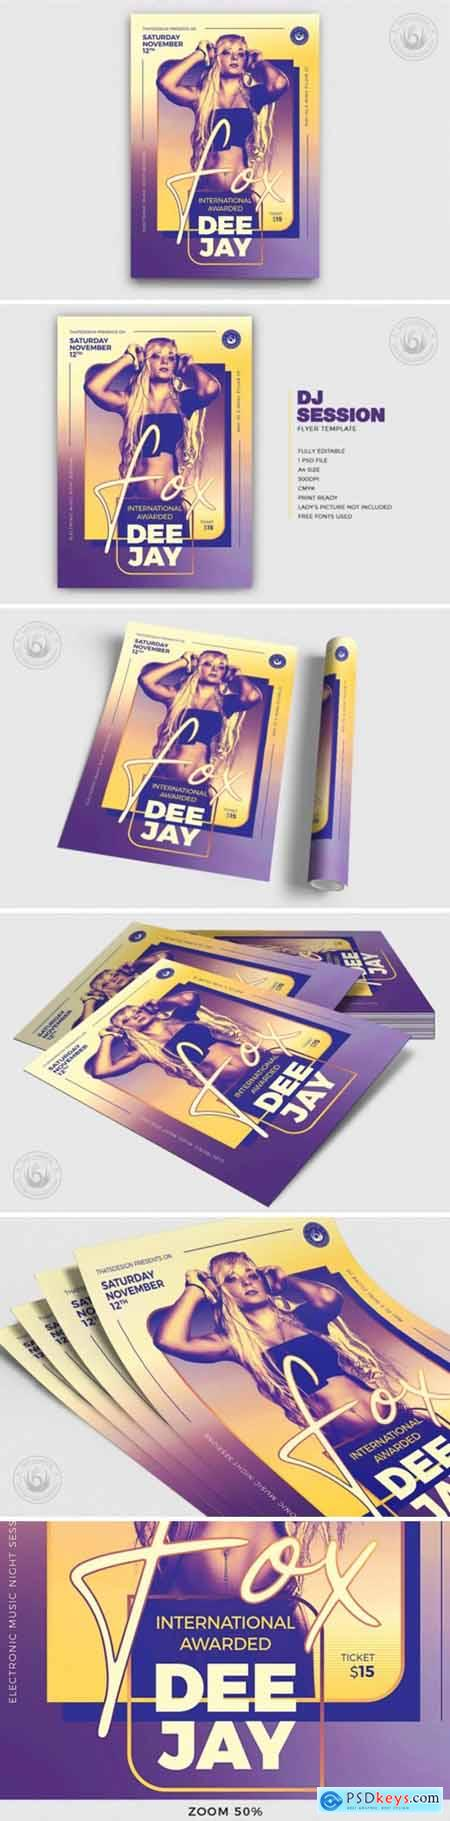 DJ Session Flyer Template V9 1749377